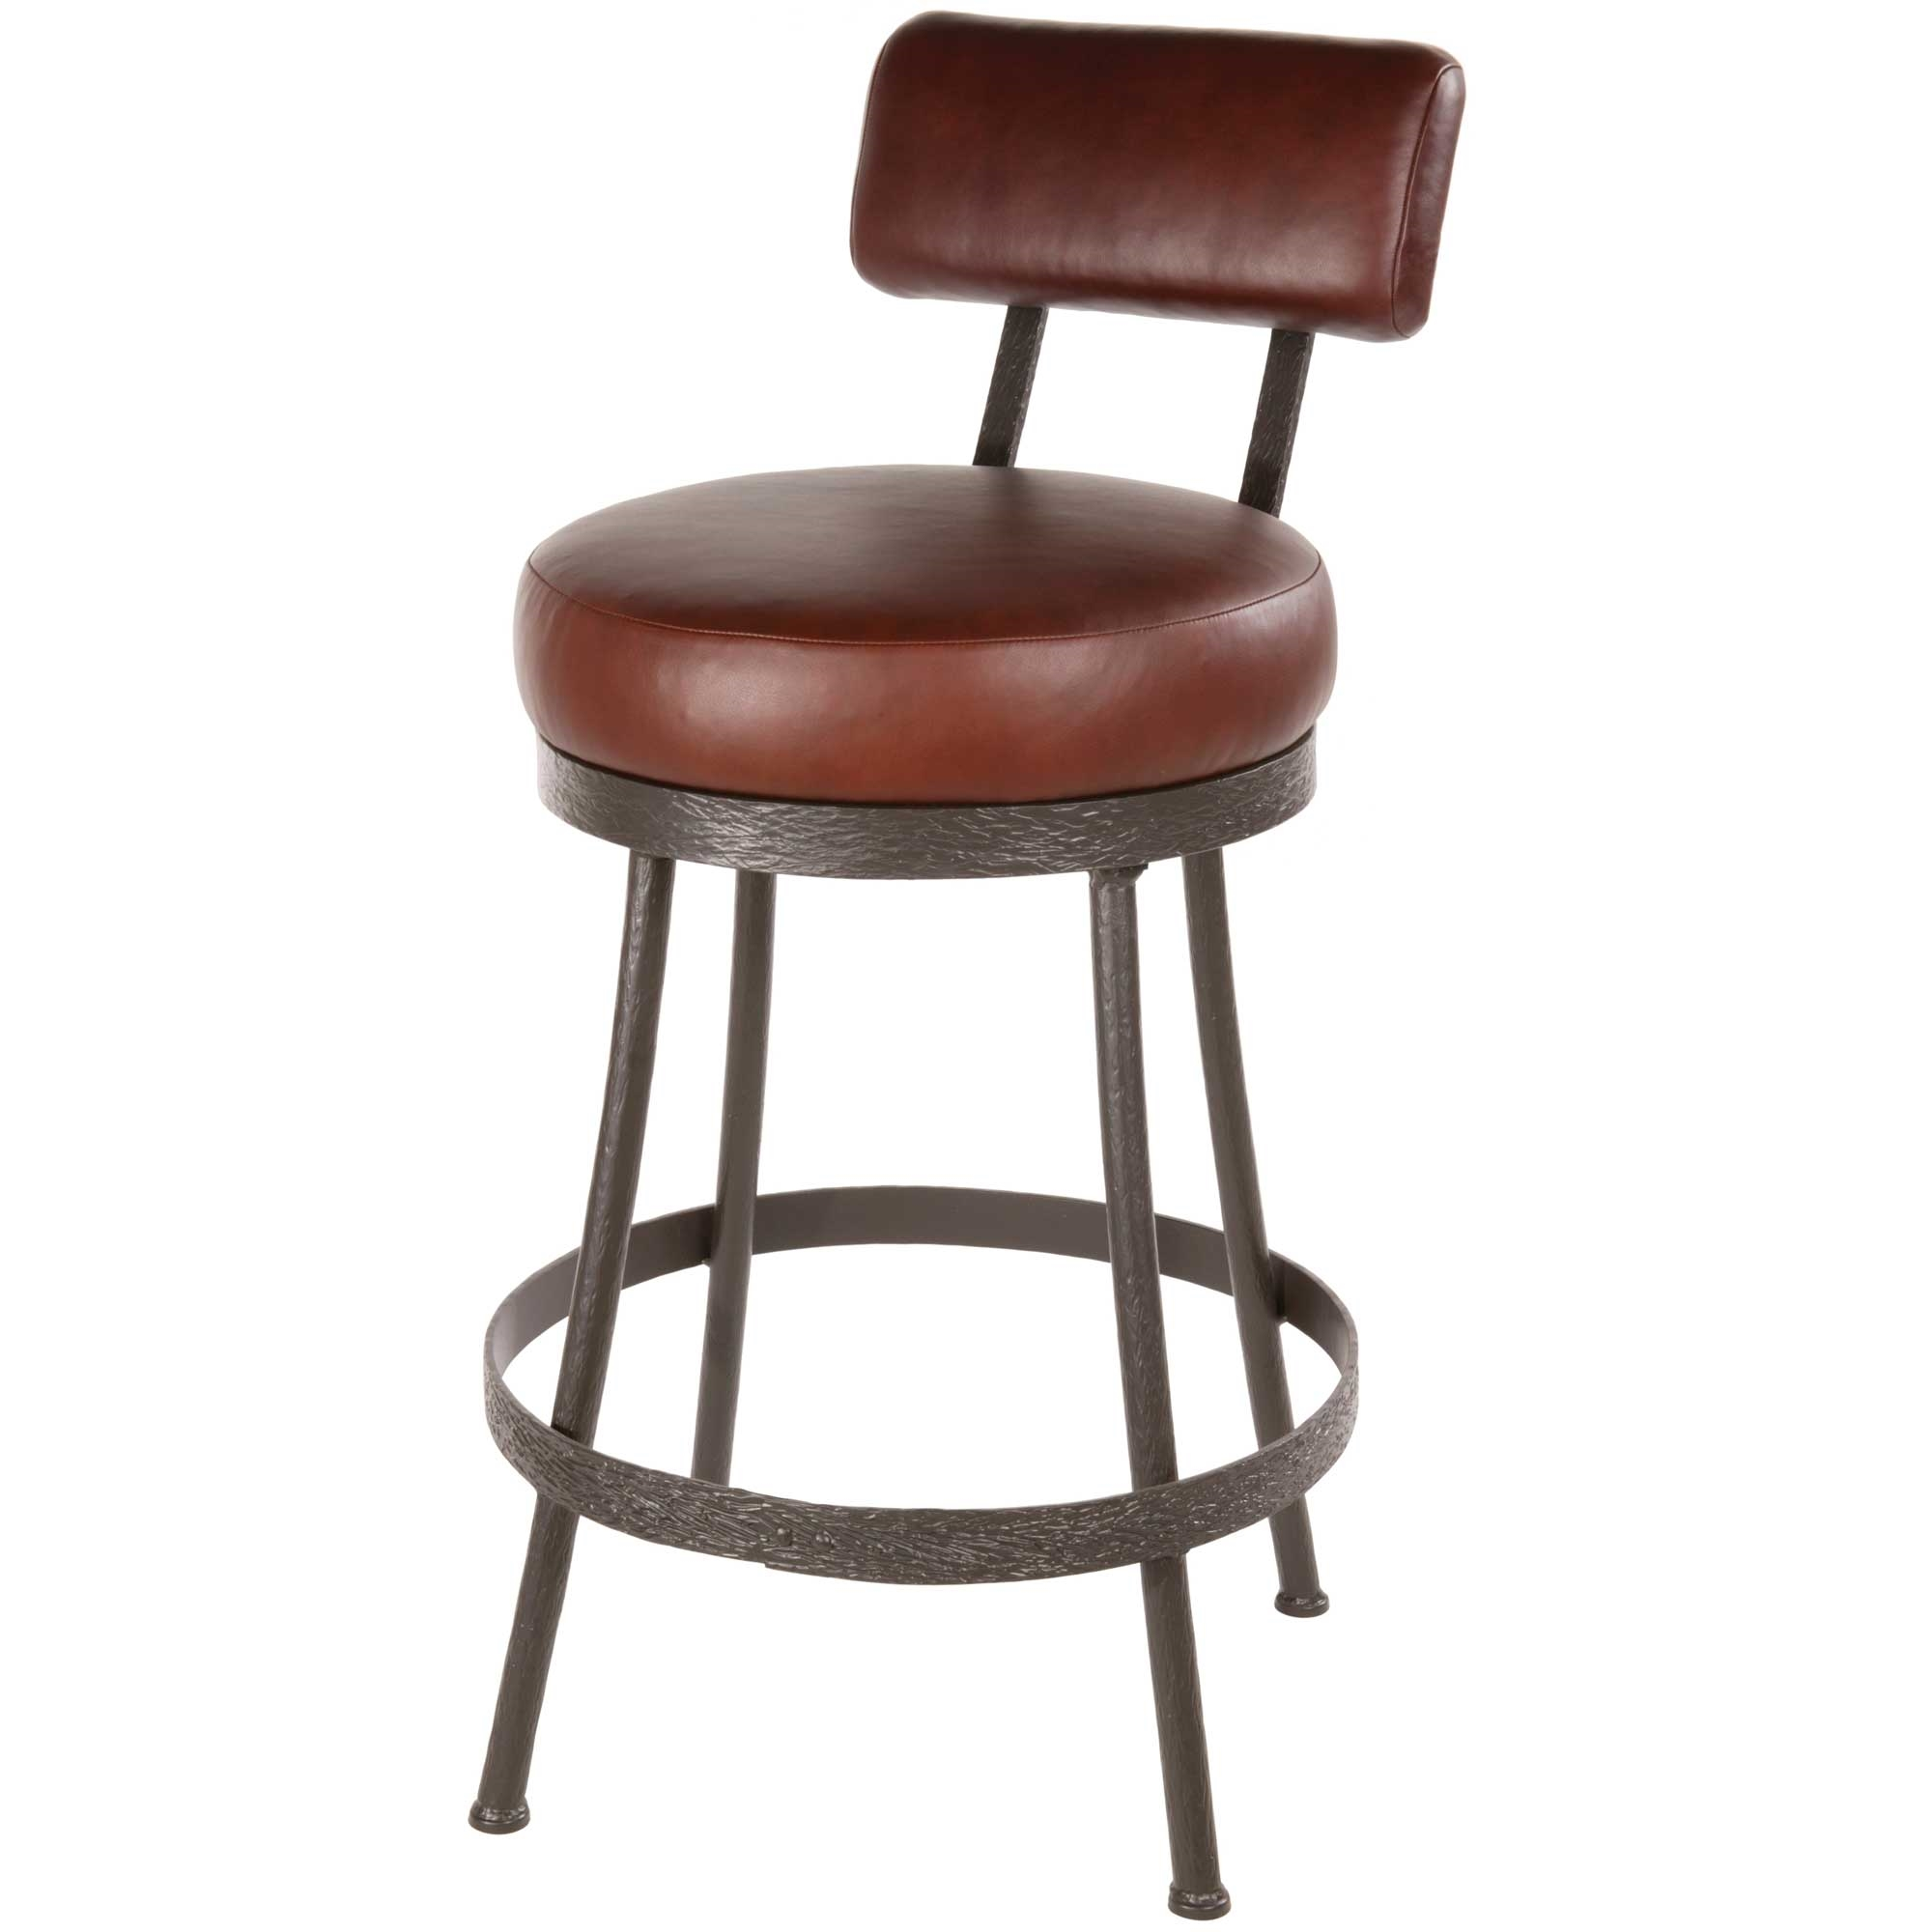 Pictured Here Is The Cedarvale Counter Stool With Plush